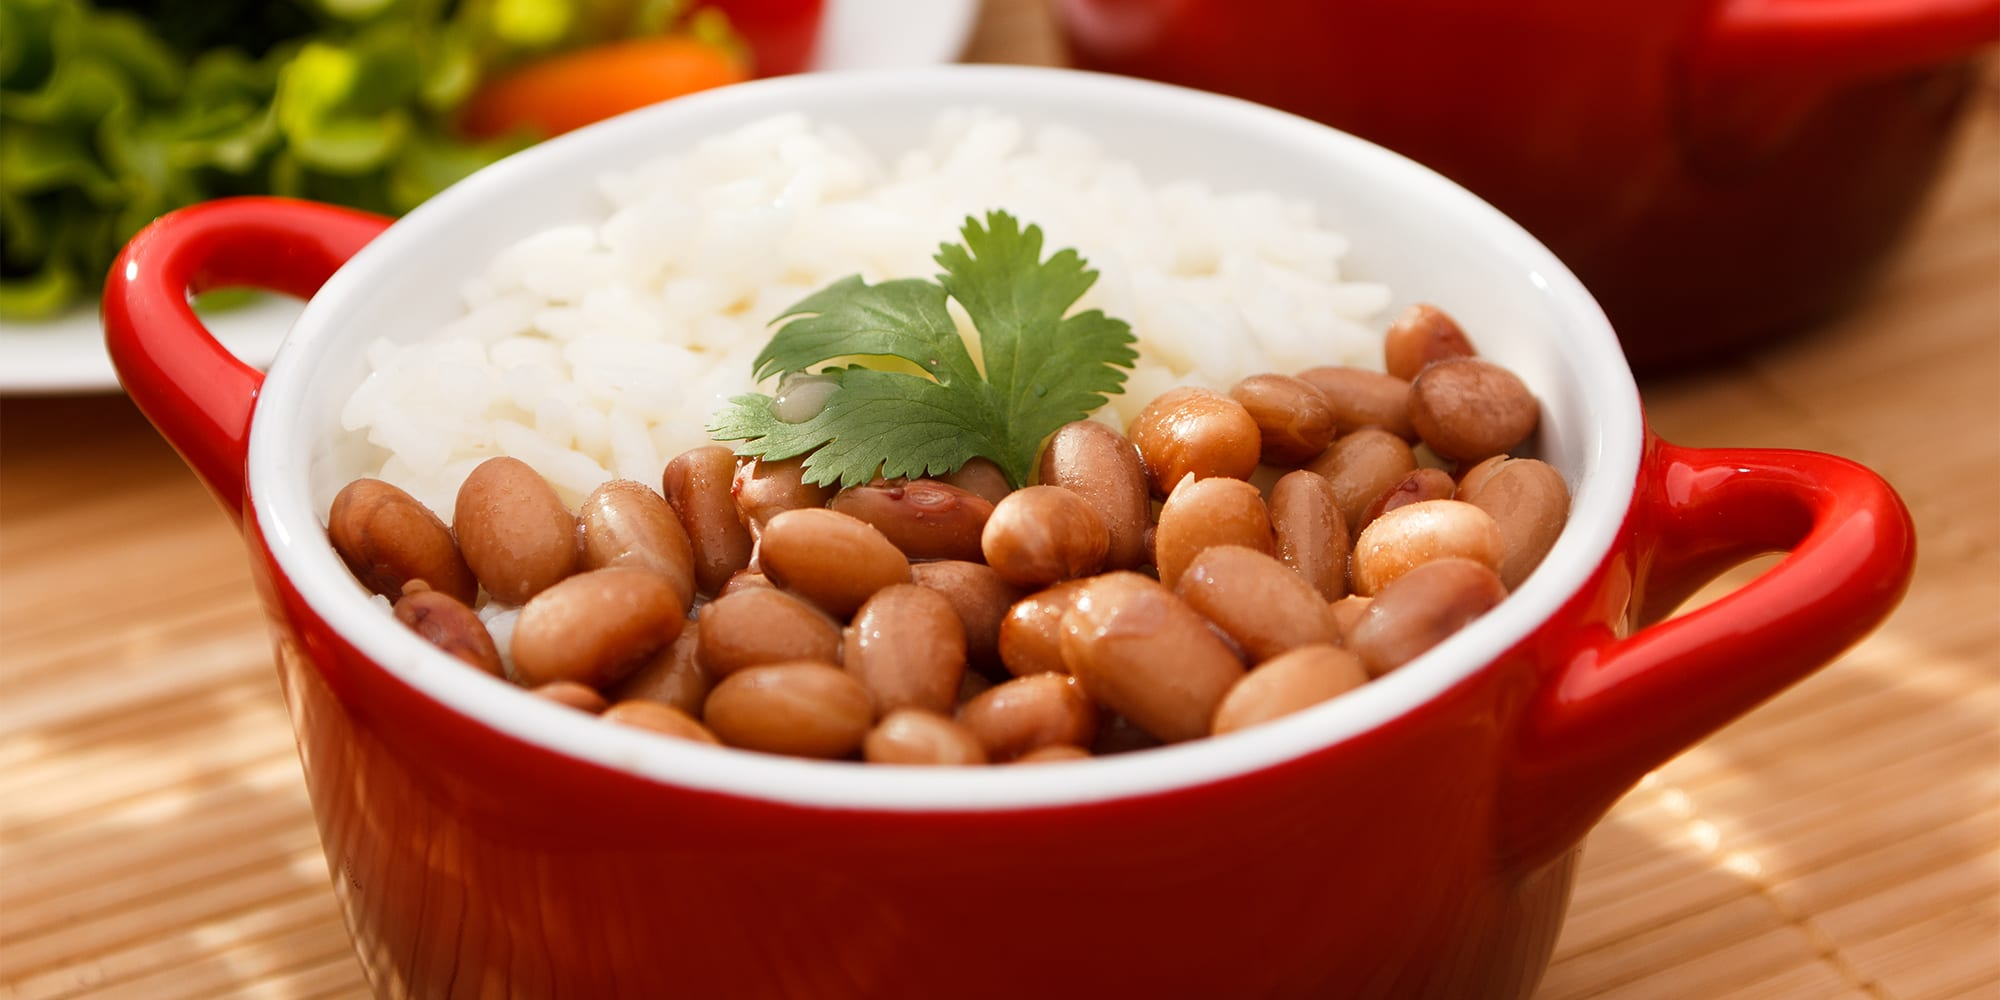 How to Combine Complementary Proteins on a Plant-Based Diet